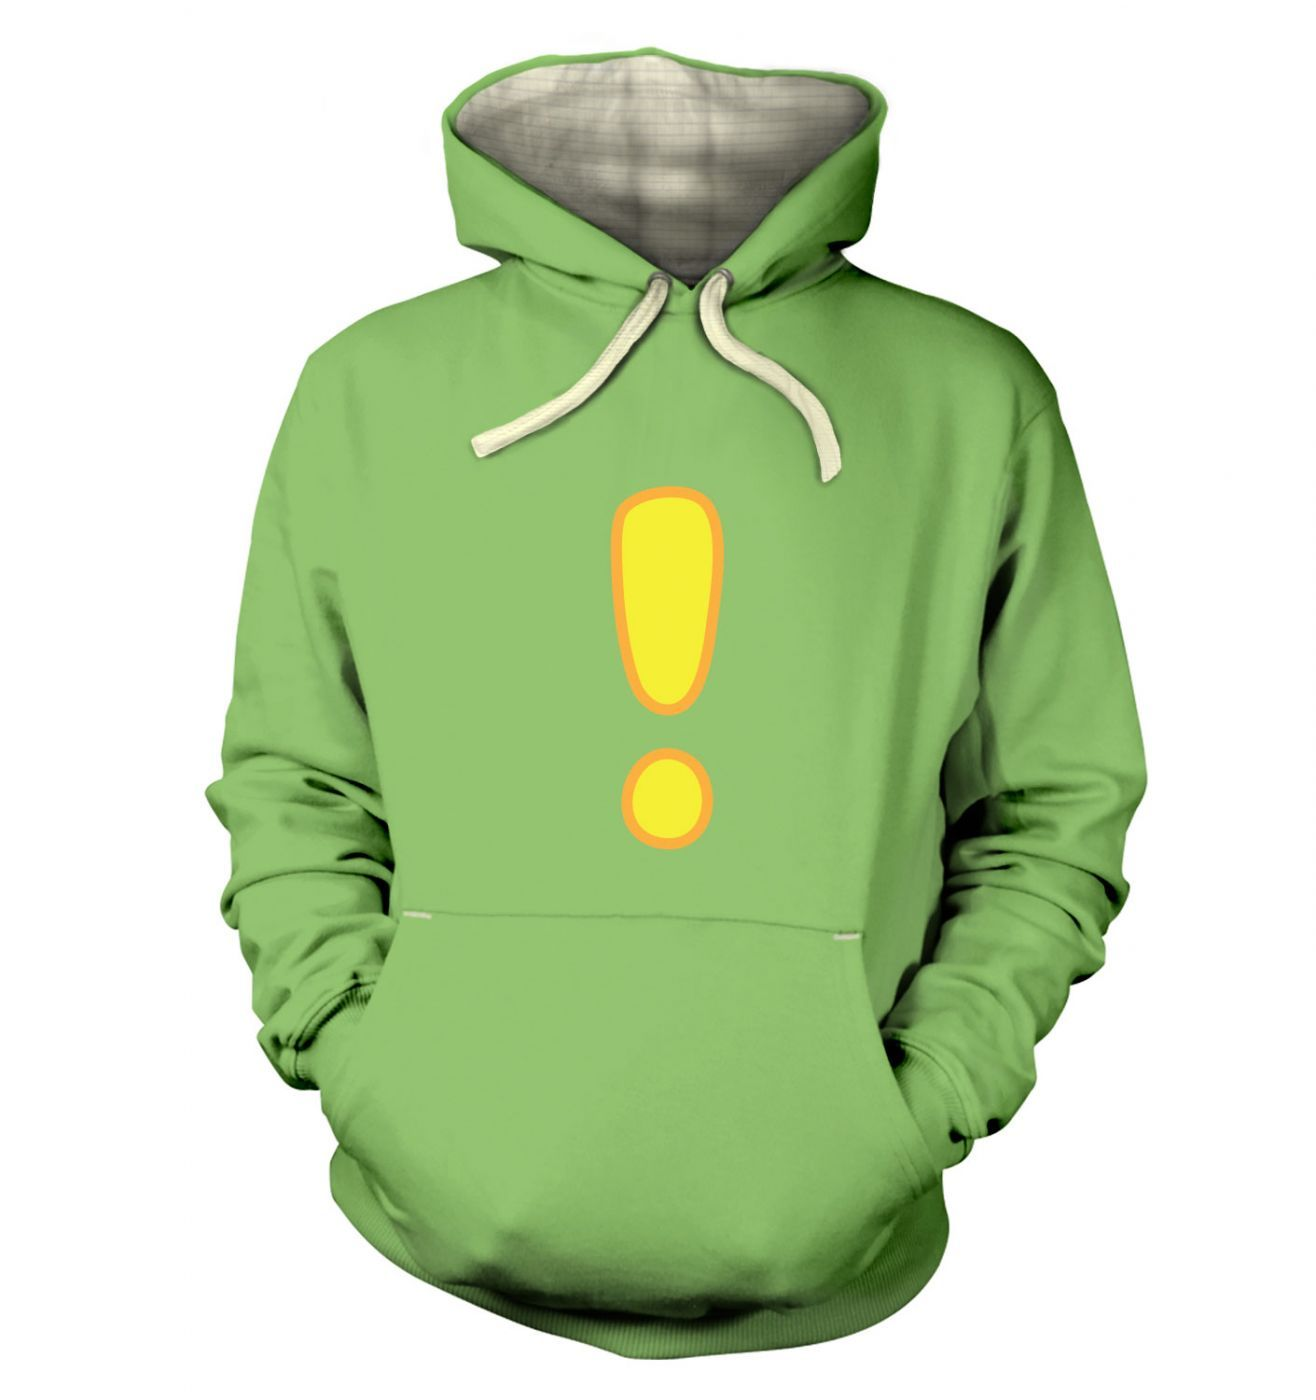 Quest Exclamation Mark  hoodie (premium)